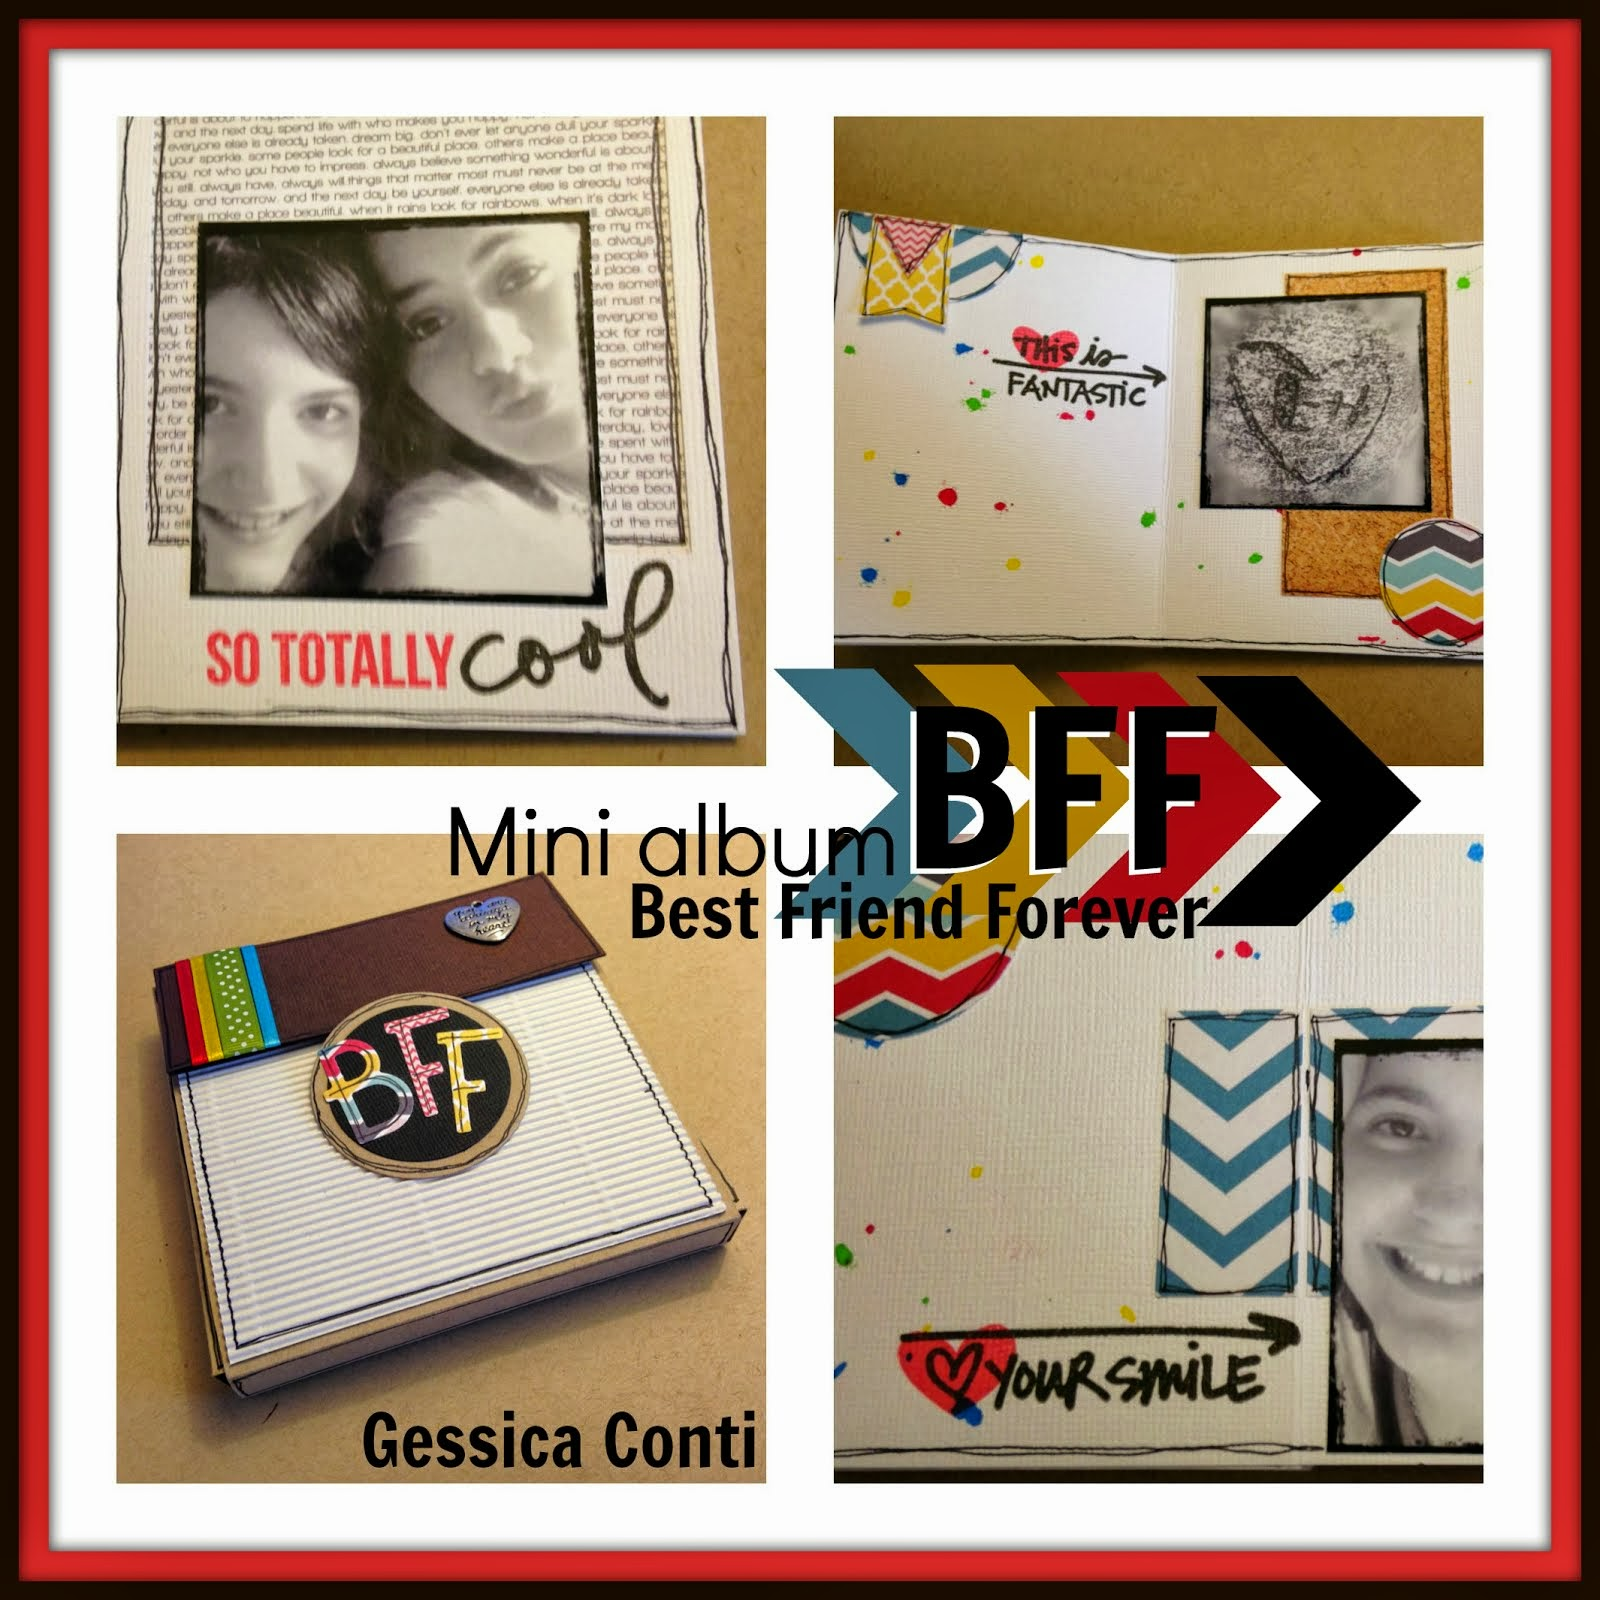 Corso mini album BFF Best Friend Forever